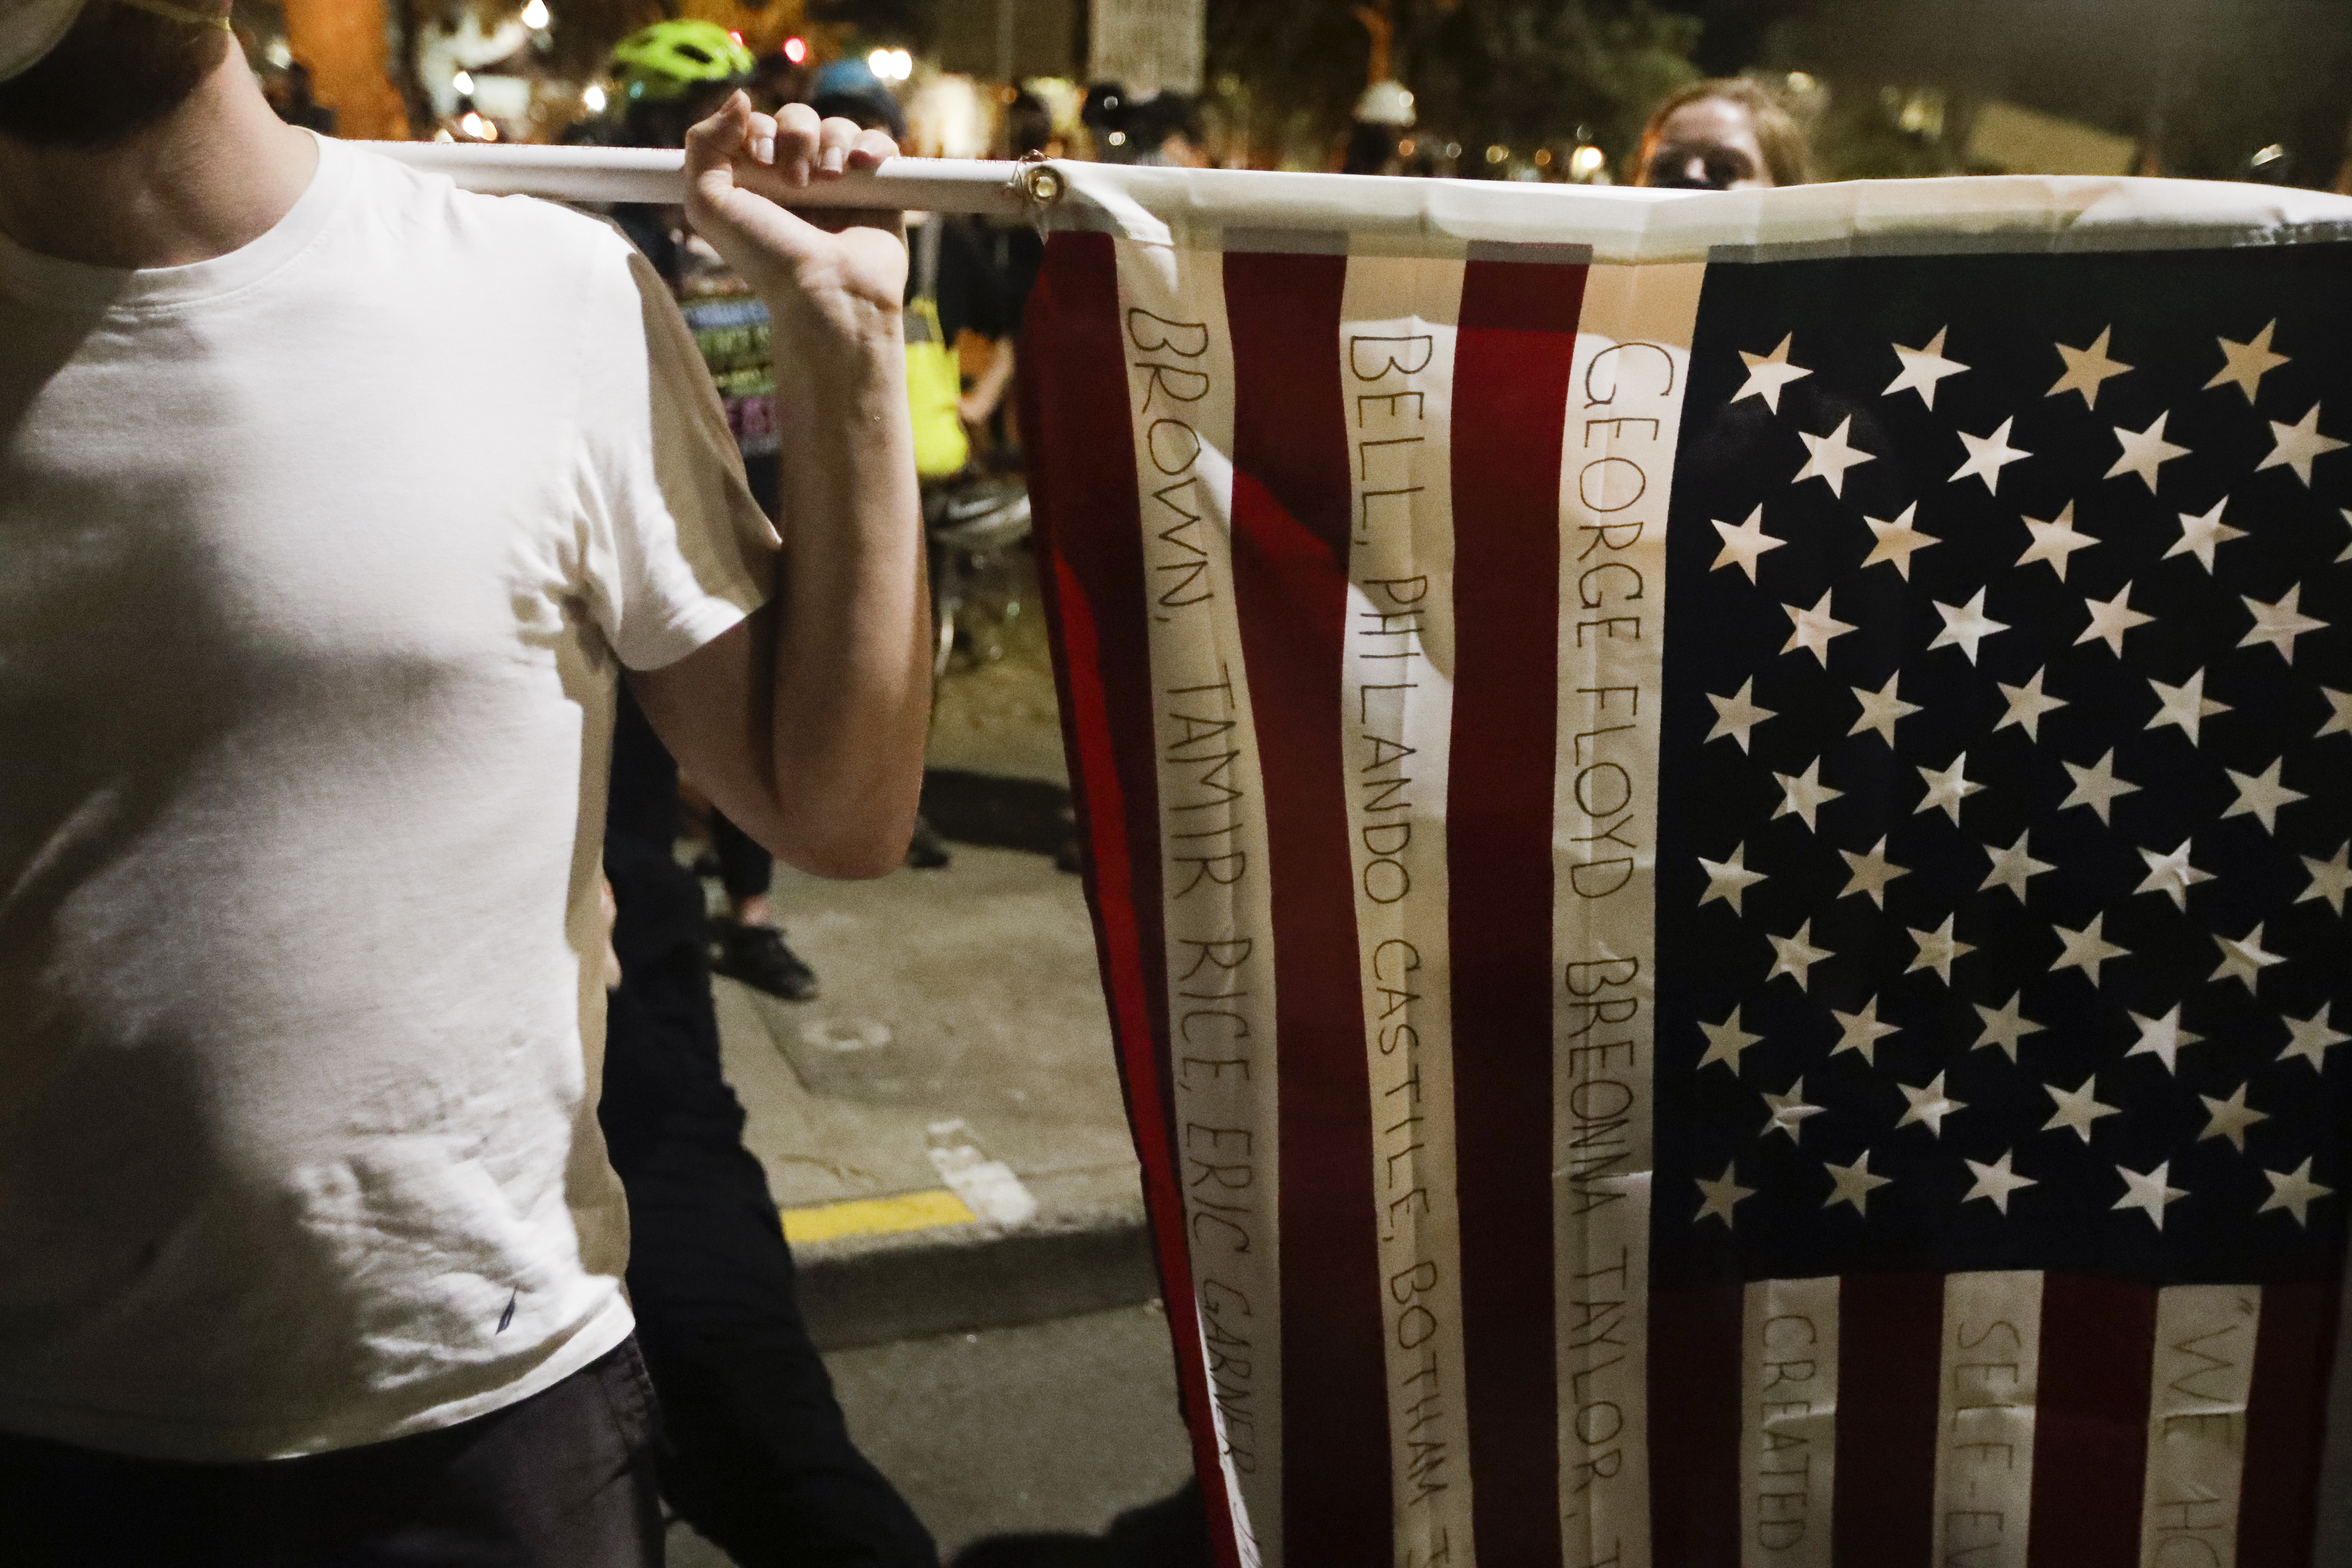 A demonstrator holds an American flag with names of people killed by police during a Black Lives Matter protest at the Mark O. Hatfield United States Courthouse Sunday, July 26, 2020, in Portland, Ore. (AP Photo/Marcio Jose Sanchez)